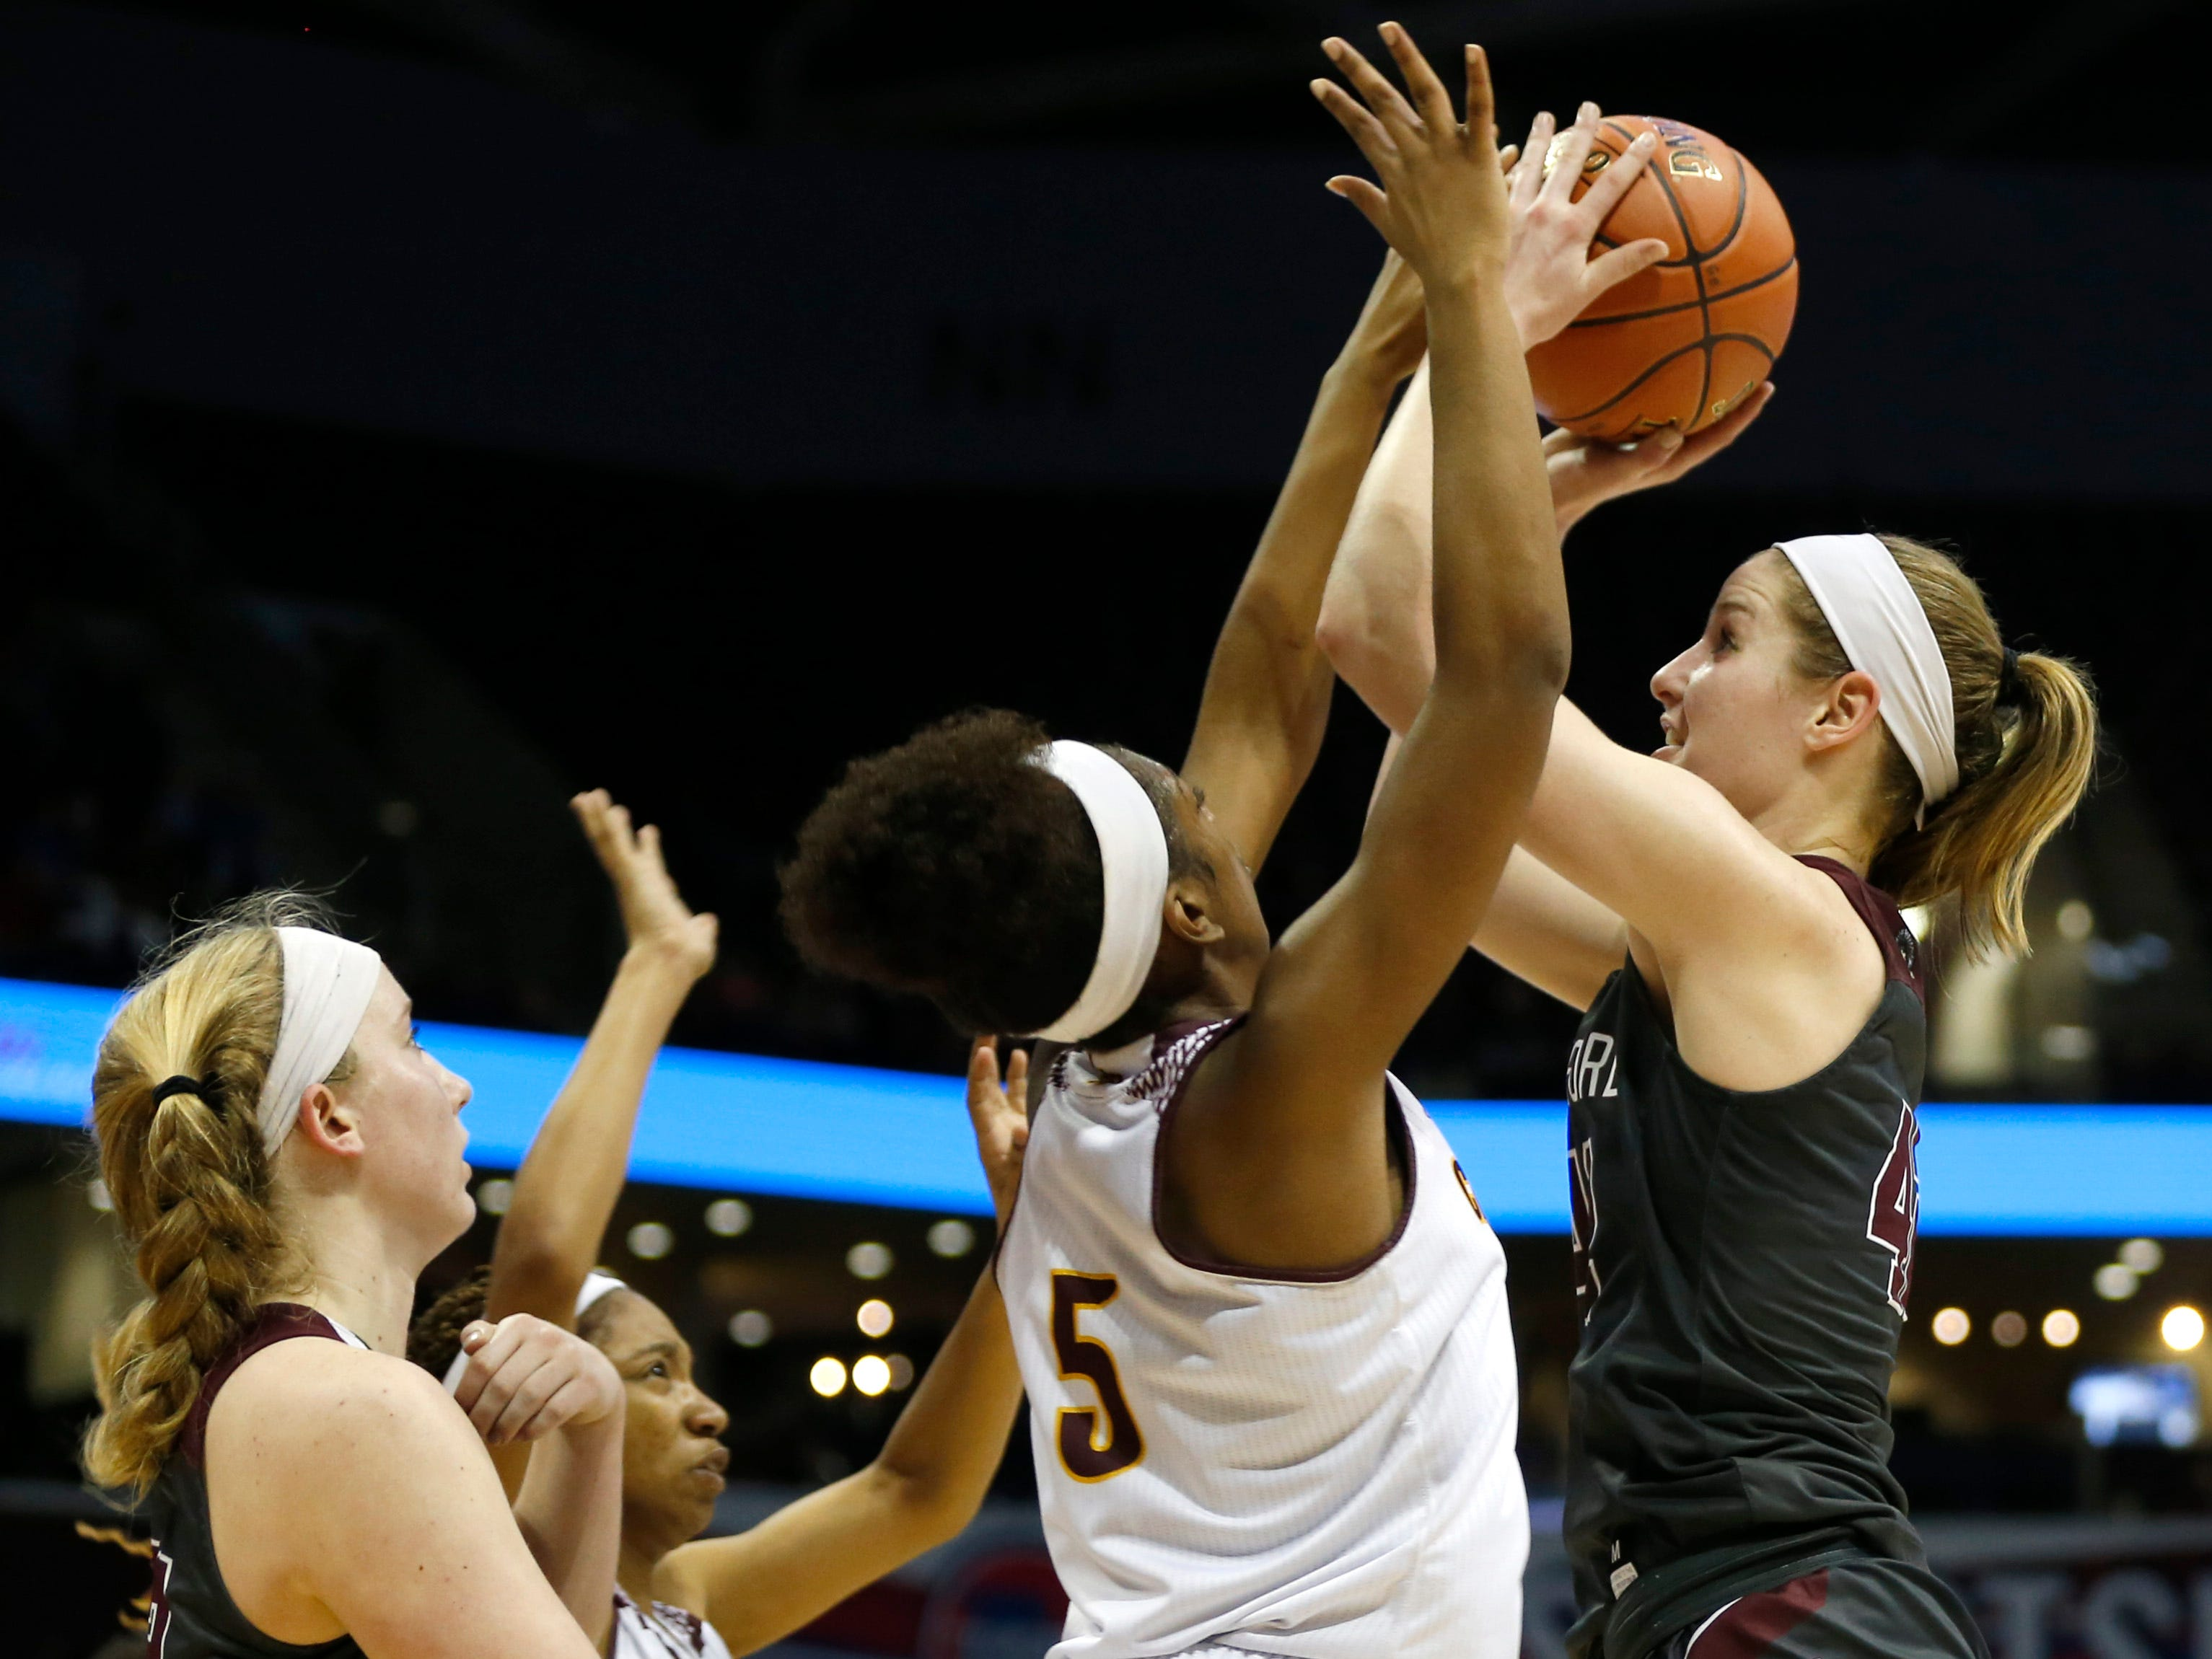 The Strafford Lady Indians take on the Lutheran North Crusaders in the Class 3 state championship game at JQH Arena on Friday, March 8, 2019.